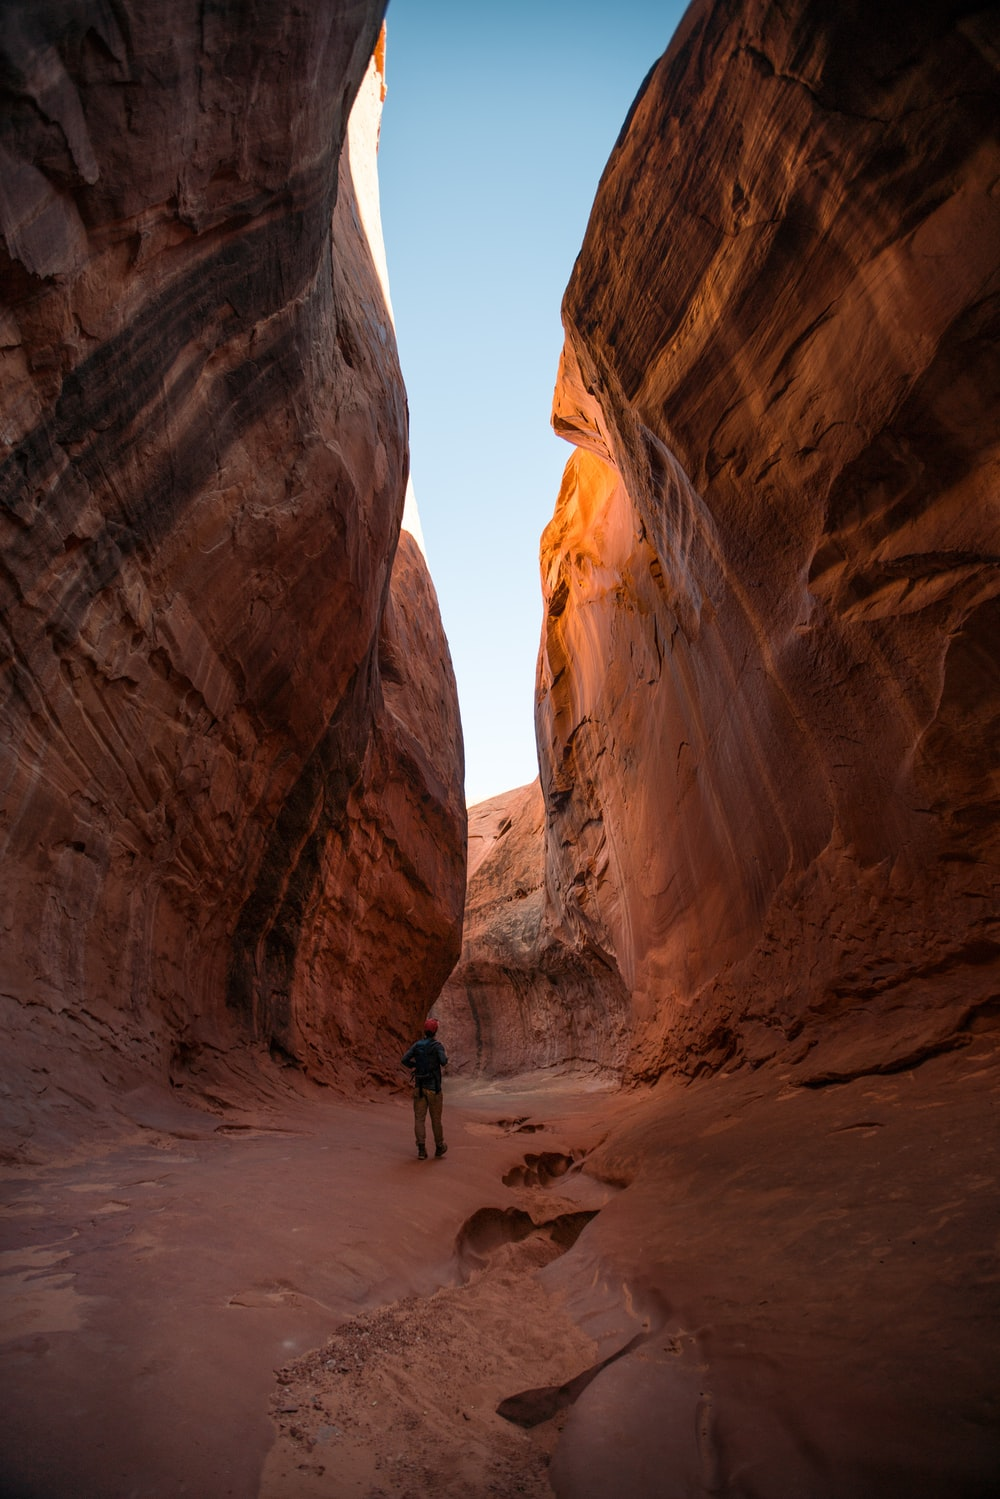 man standing in middle of rock formation during daytime